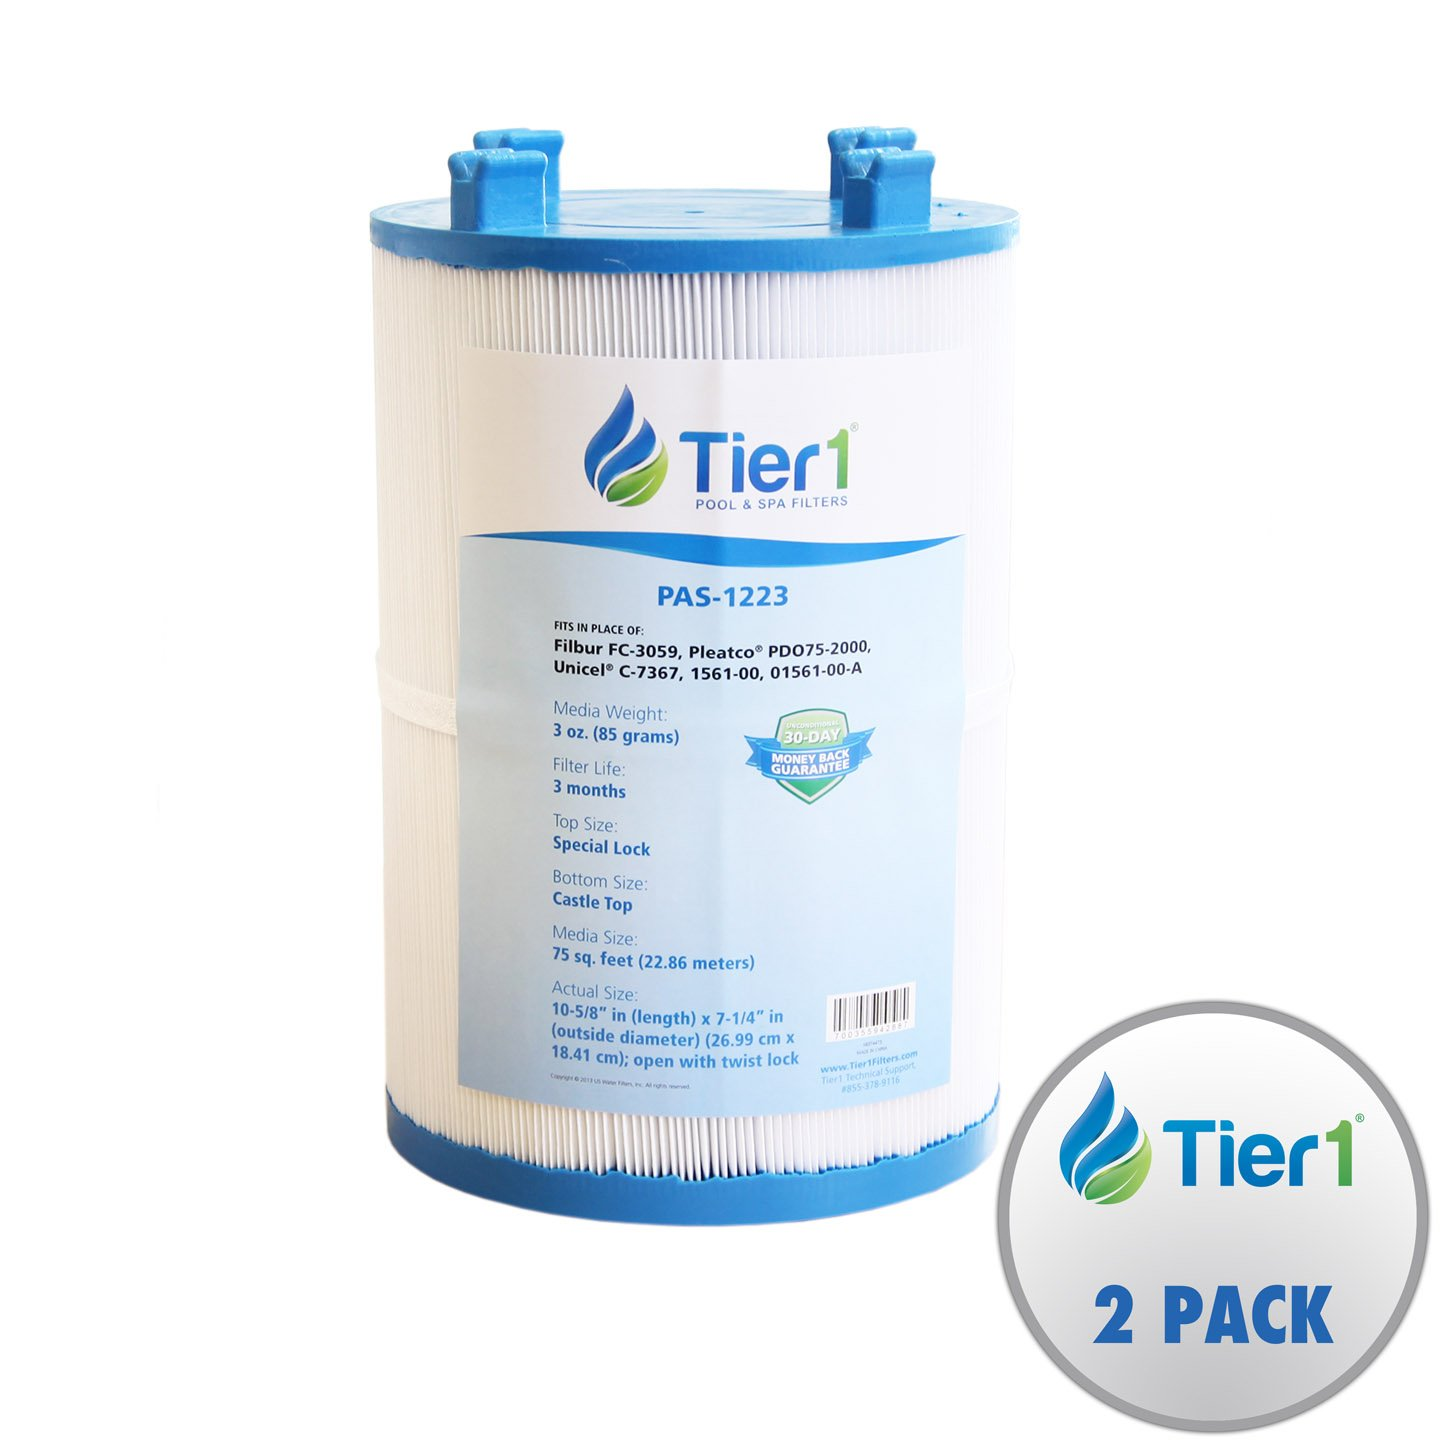 Tier1 Dimension One 1561-00, Pleatco PDO75-2000, Filbur FC-3059, Unicel C-7367 Comparable Replacement Spa Filter Cartridge for Dimension one Spas (2-Pack)